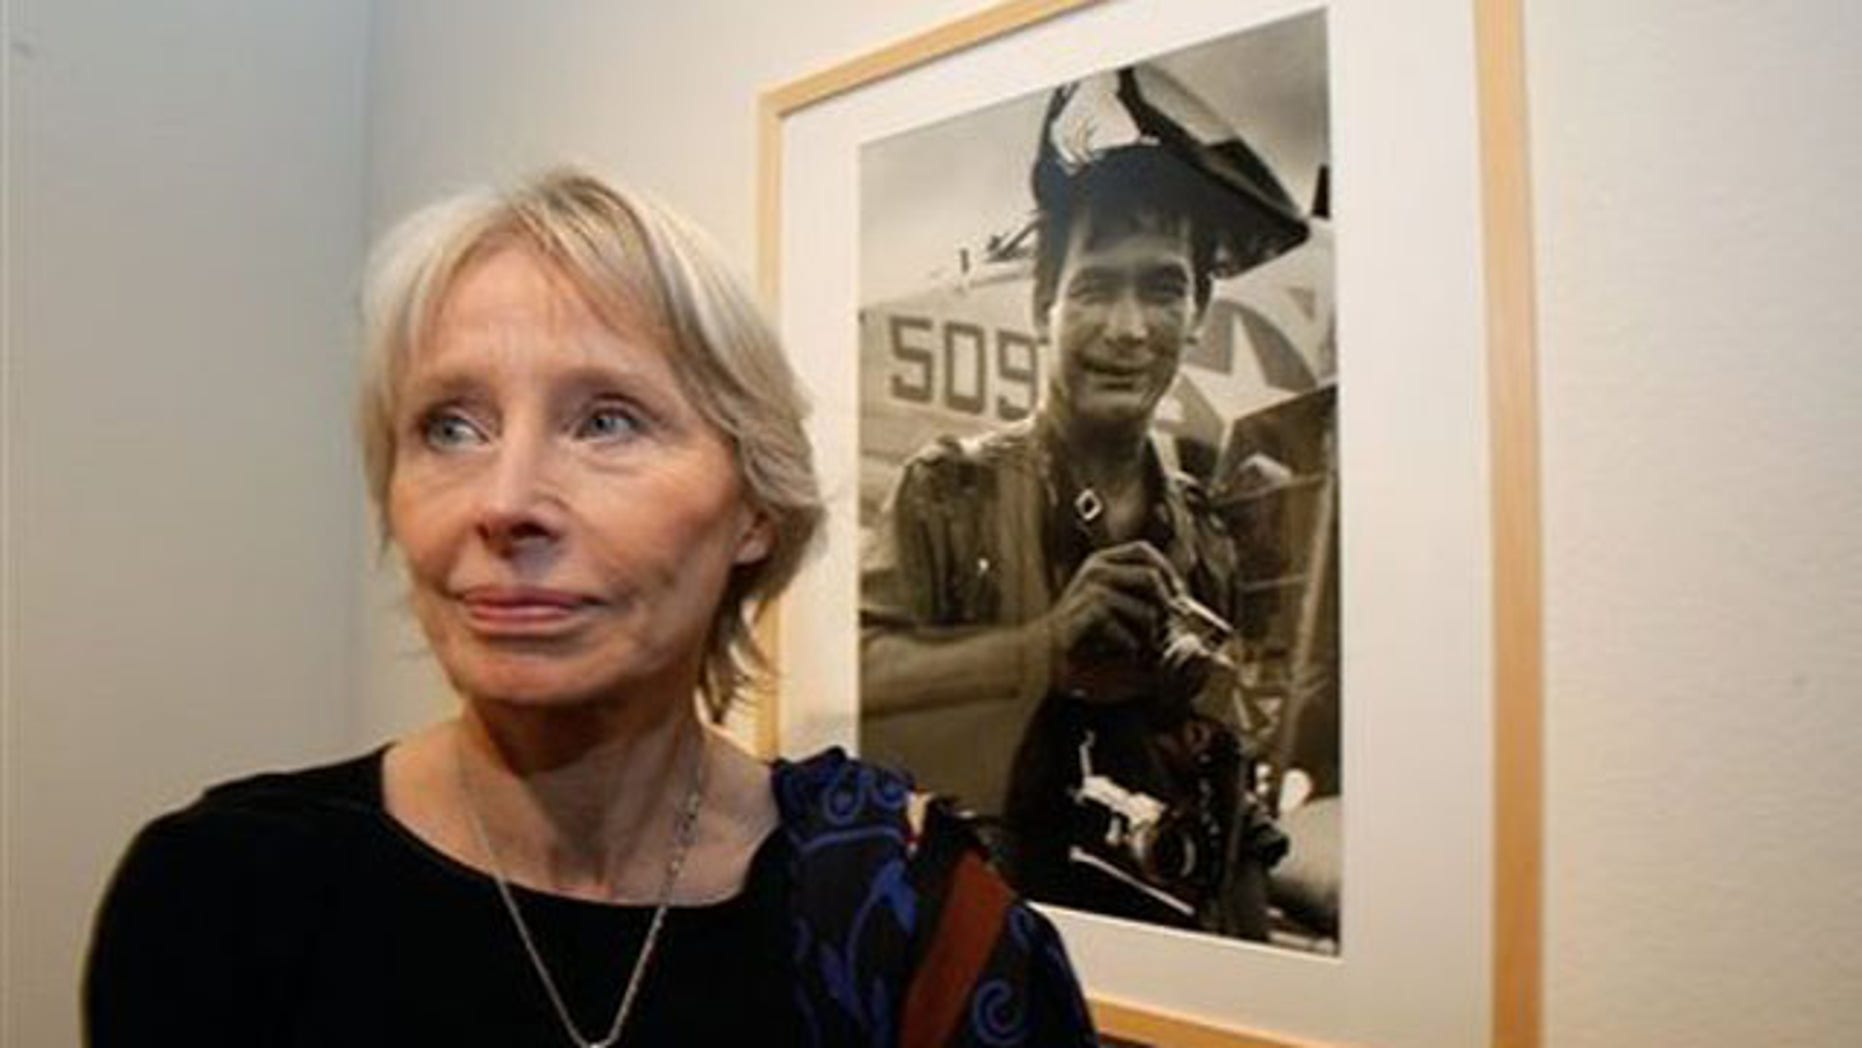 Feb. 8, 2011: Cecile Blumental, nee Schrouben, friend of Henri Huet, stands next to a photograph of Huet at the 'Henri Huet, Vietnam' exhibition at the Maison Europeenne de la Photographie, MEP, in Paris.